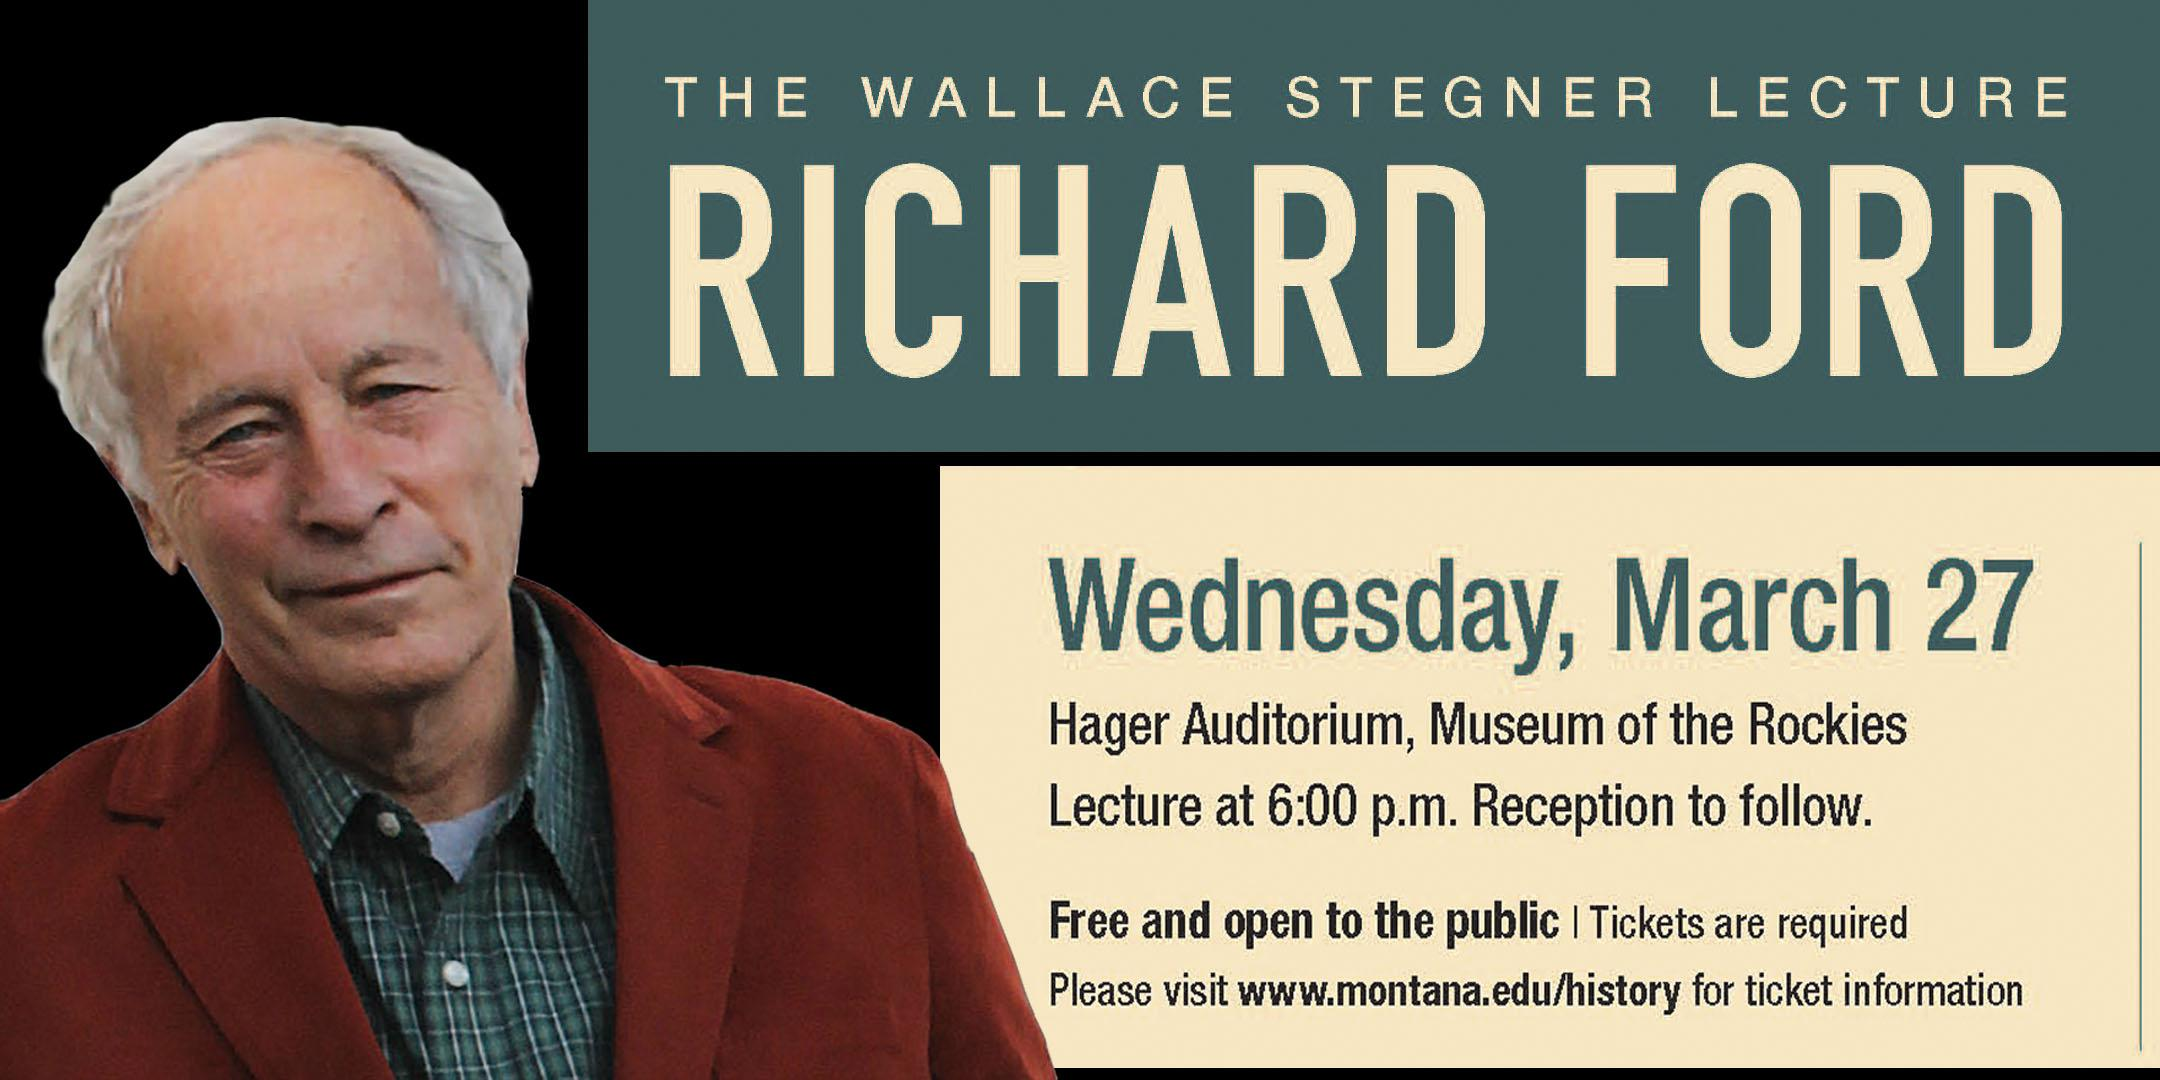 Richard Ford will be lecturing on 3/27/2019 for the Stegner Lecture